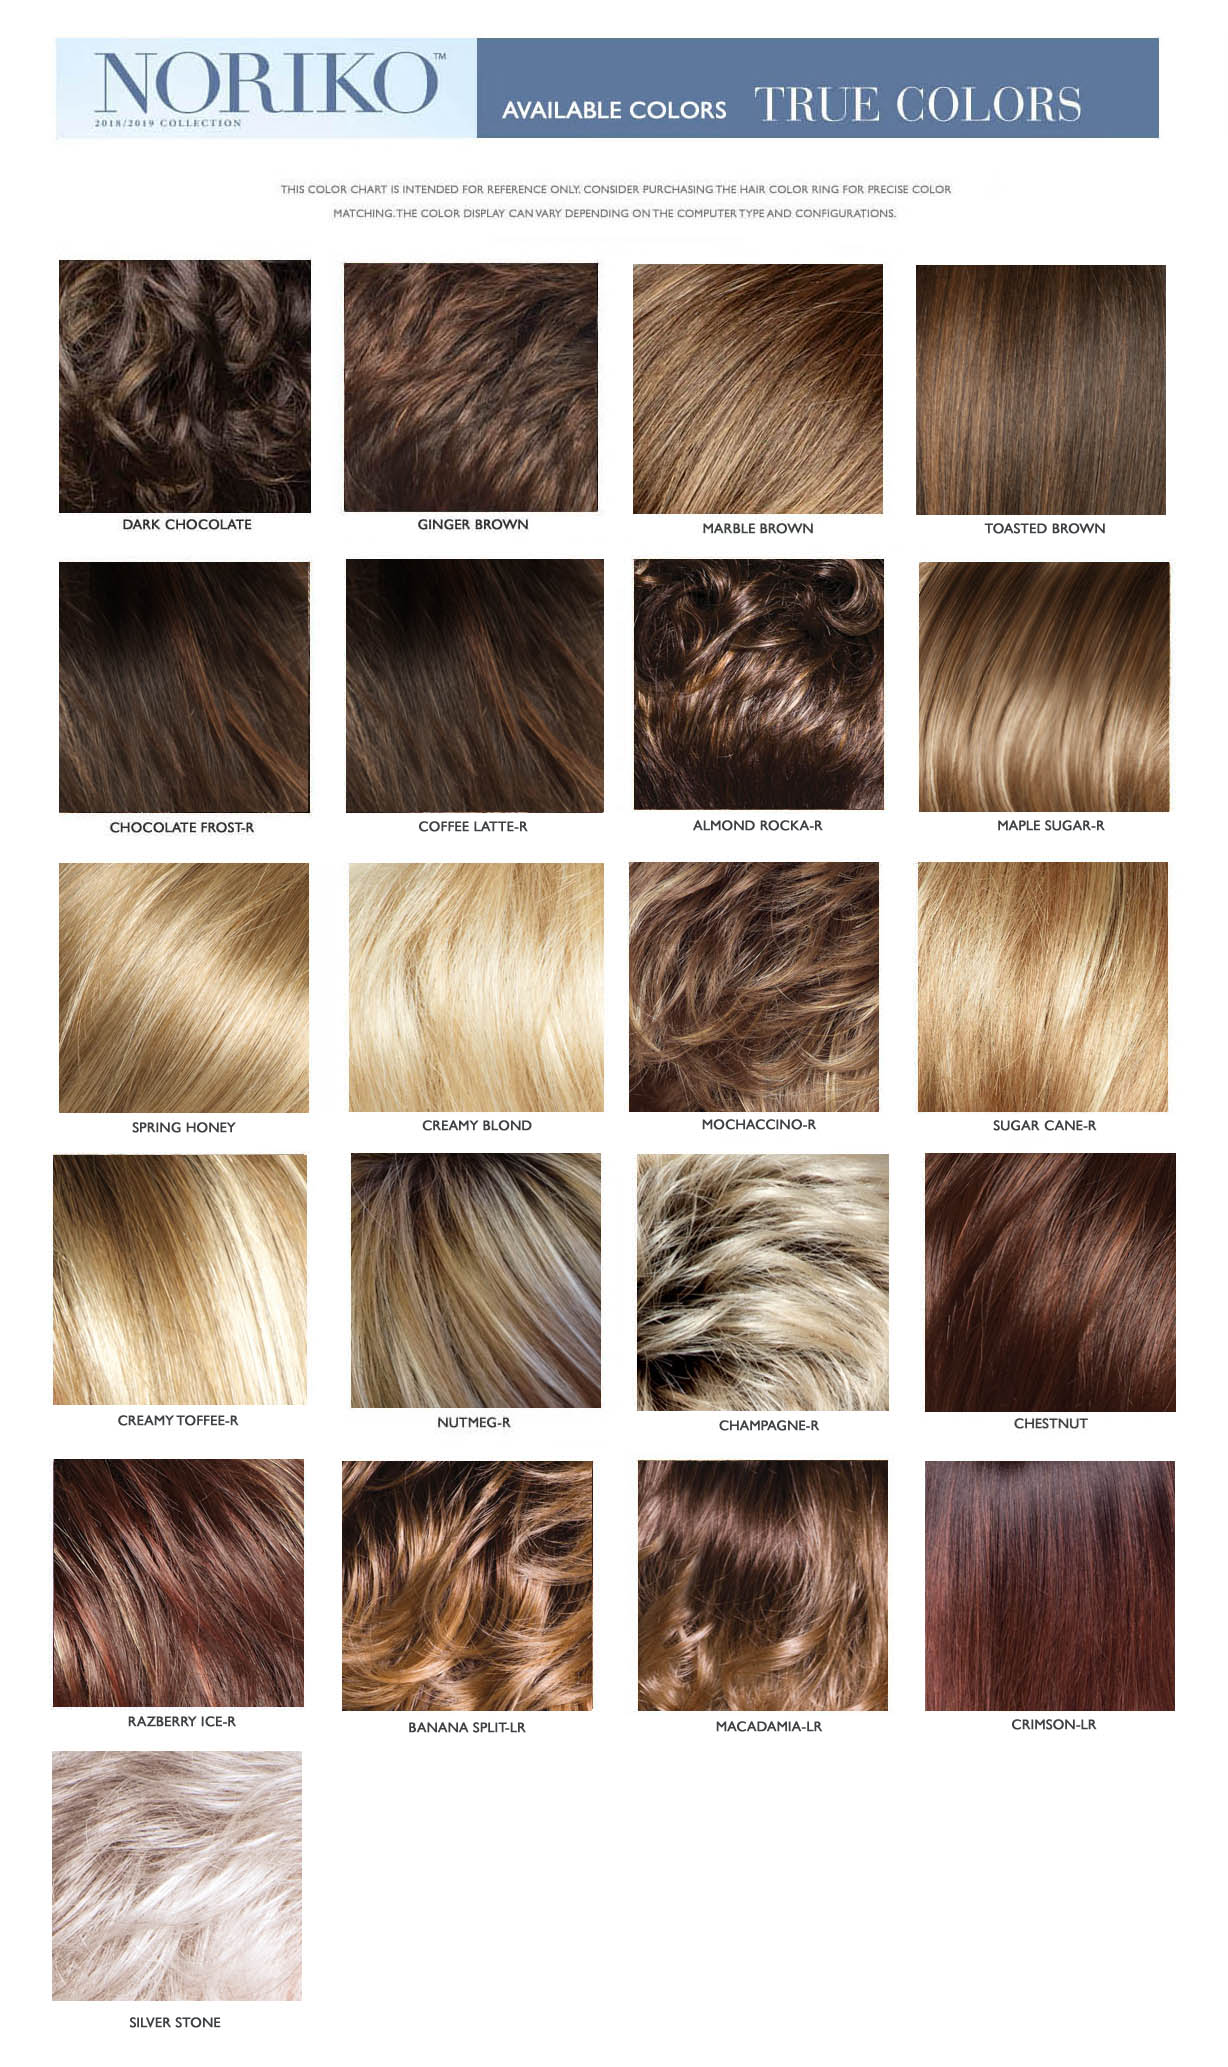 NORIKO DOLCE COLOR CHART